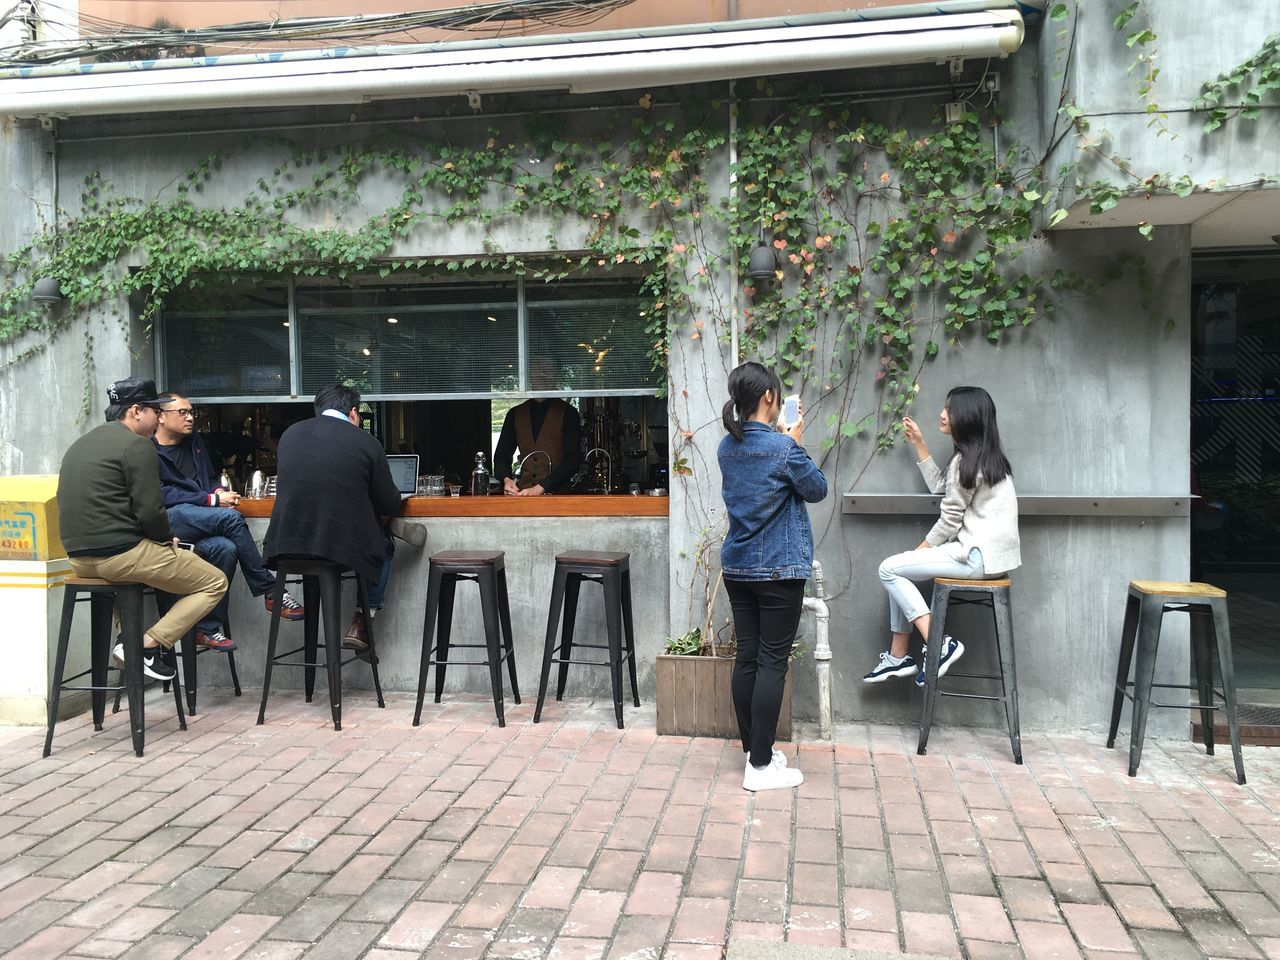 chair, full length, real people, casual clothing, table, day, sidewalk cafe, restaurant, sitting, outdoors, men, togetherness, cafe, lifestyles, women, leisure activity, tree, standing, building exterior, young adult, young women, friendship, architecture, adult, people